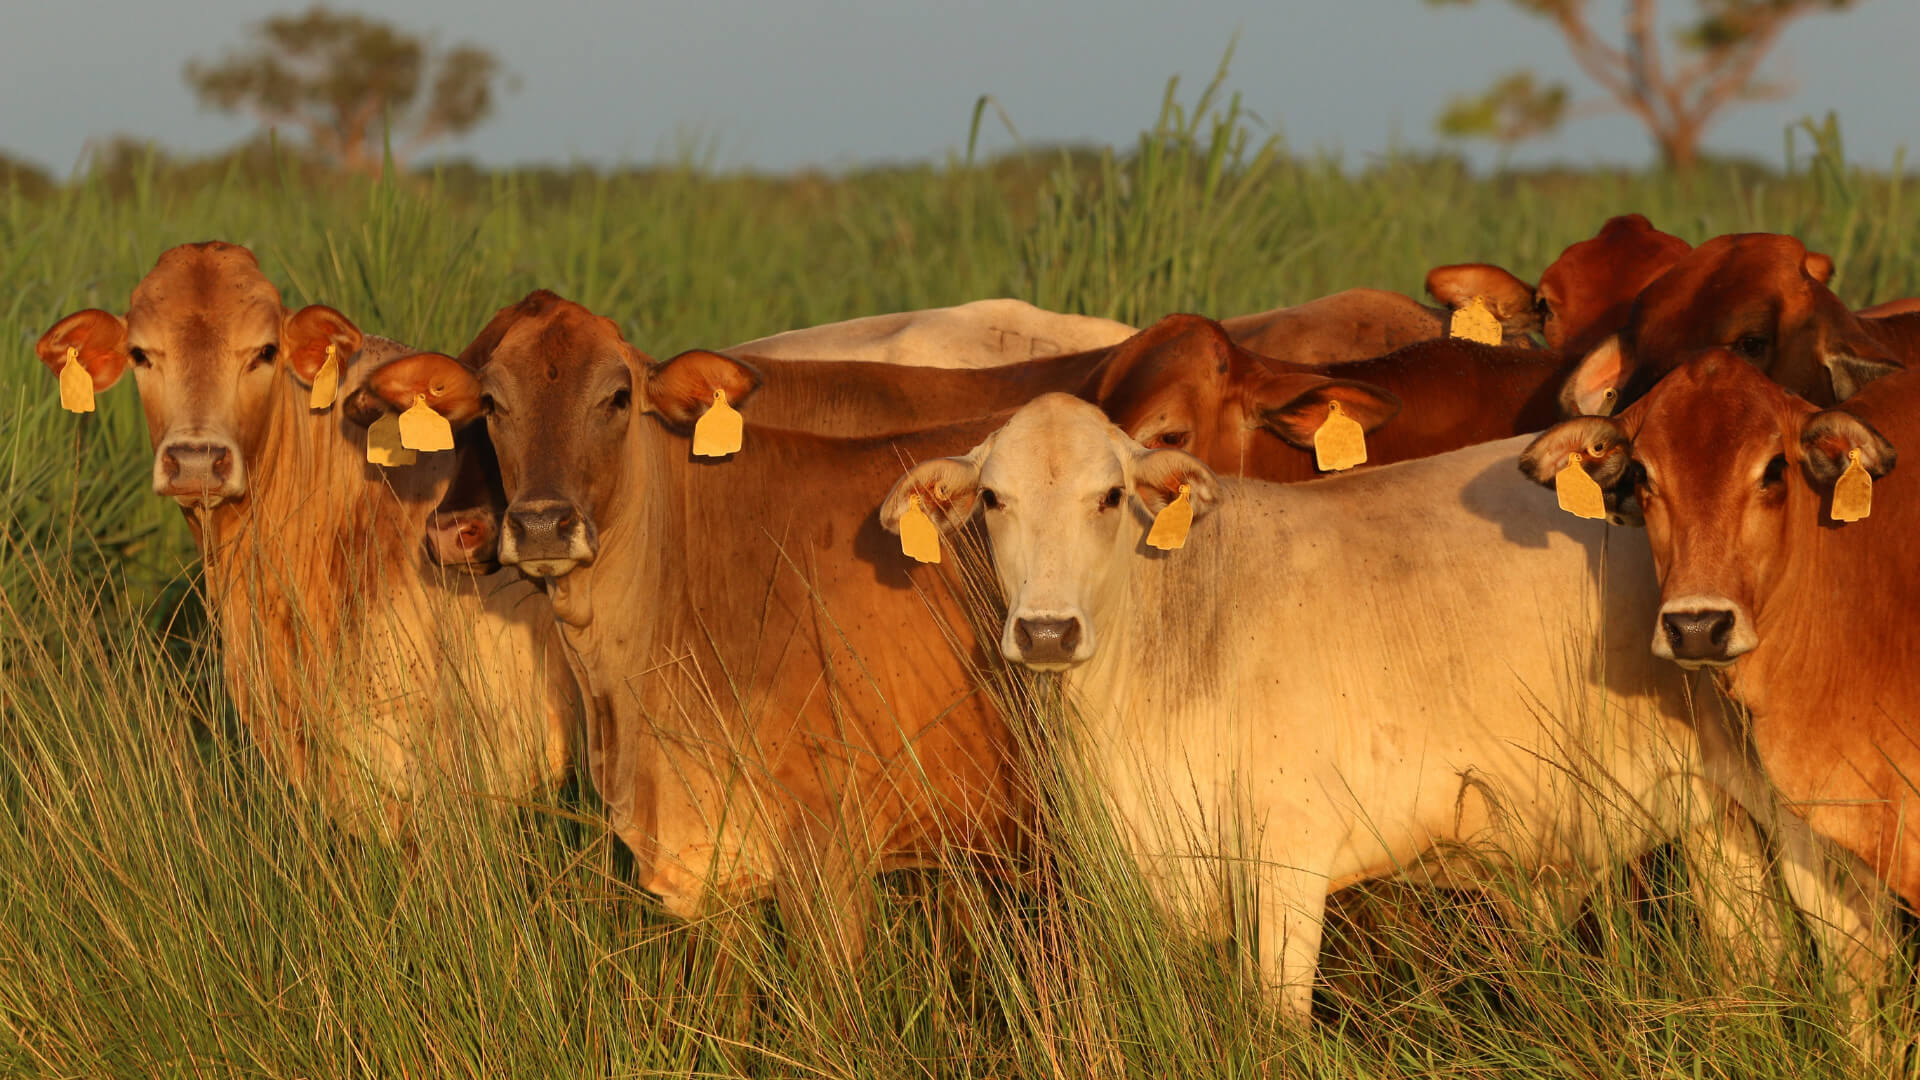 Brown Cattle with Ear Tags